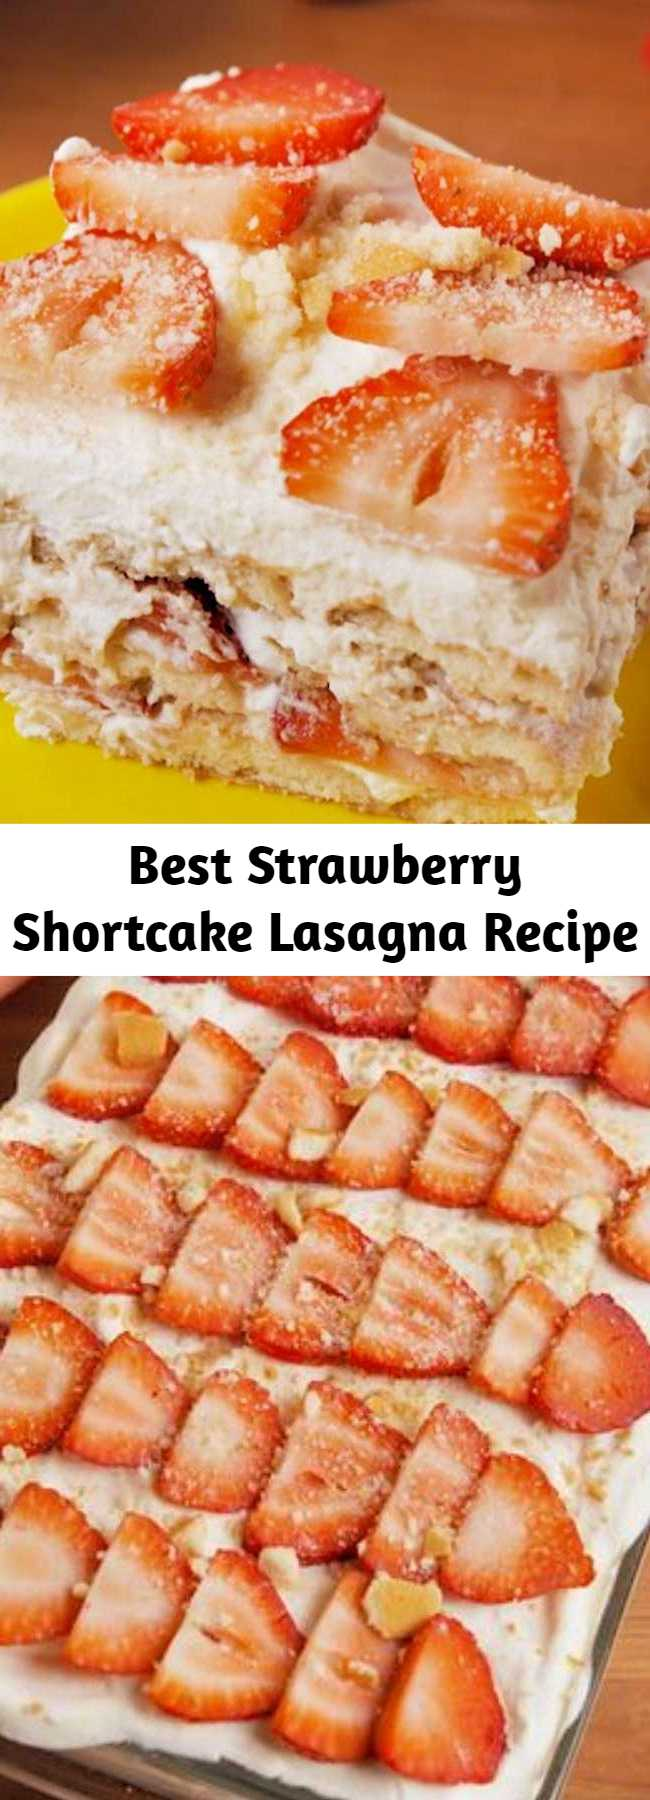 Easy to make, hard to resist. This no-bake Strawberry Shortcake Lasagna is all you need for your springtime party. #easy #recipe #nobake #dessert #dessertrecipe #strawberryshortcake #dessertlasagna #lasagna #nillawafers #coolwhip